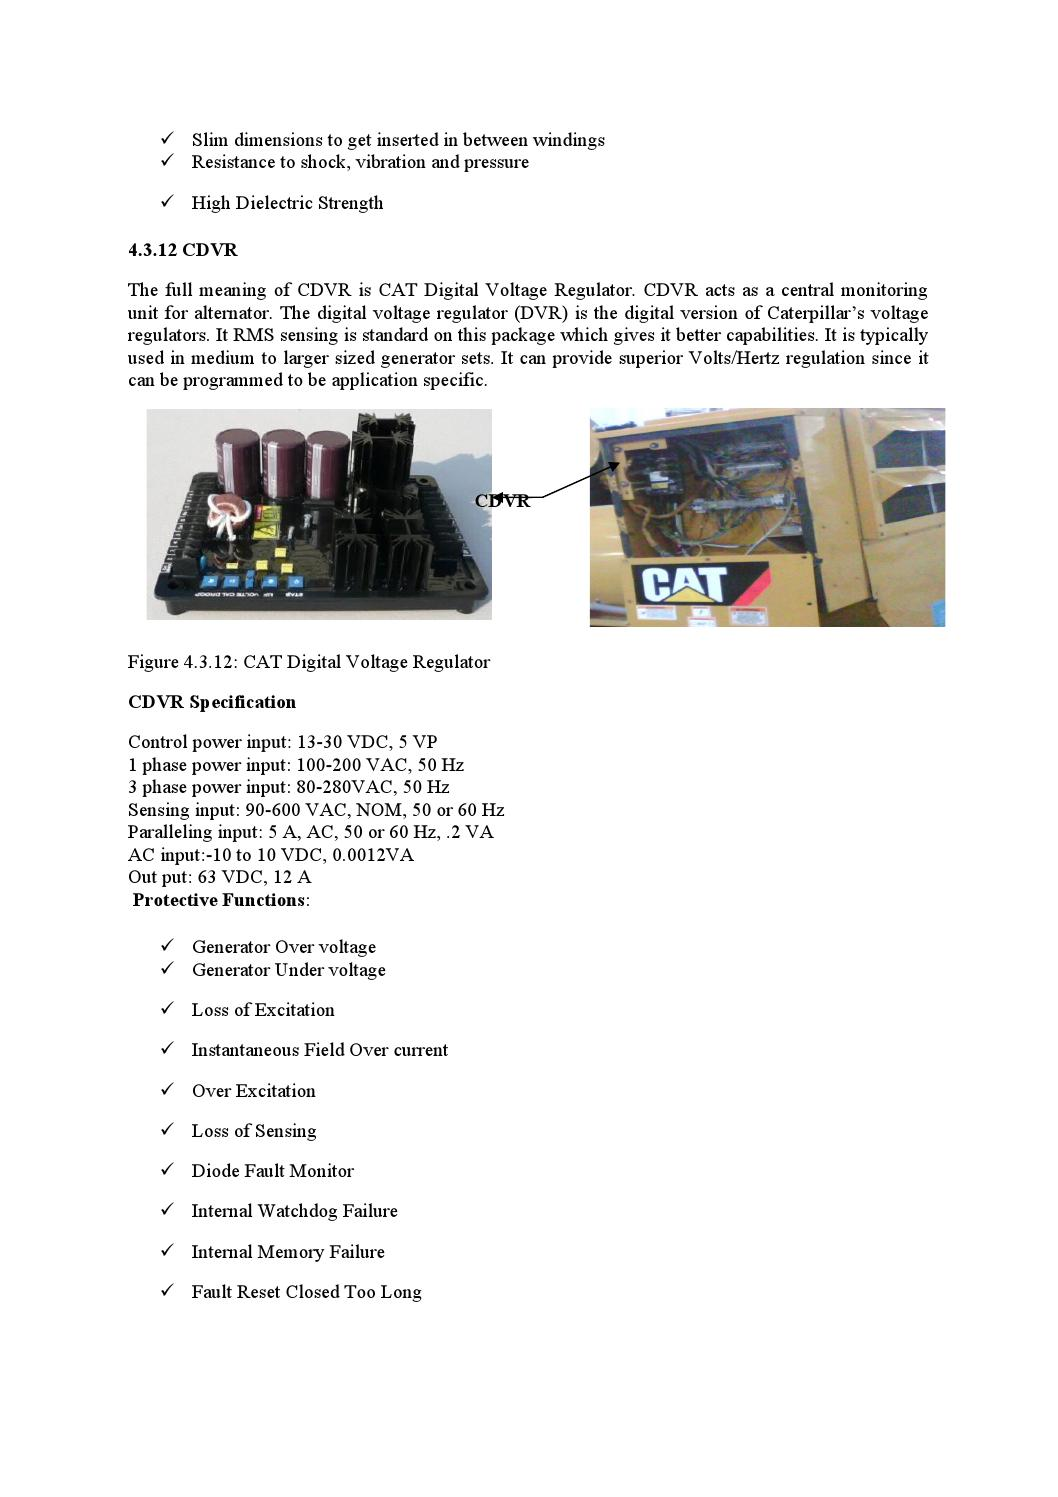 Power Generation System And Troubleshooting Of Caterpillar Generator Over Under Voltage Monitor By Md Papon Issuu